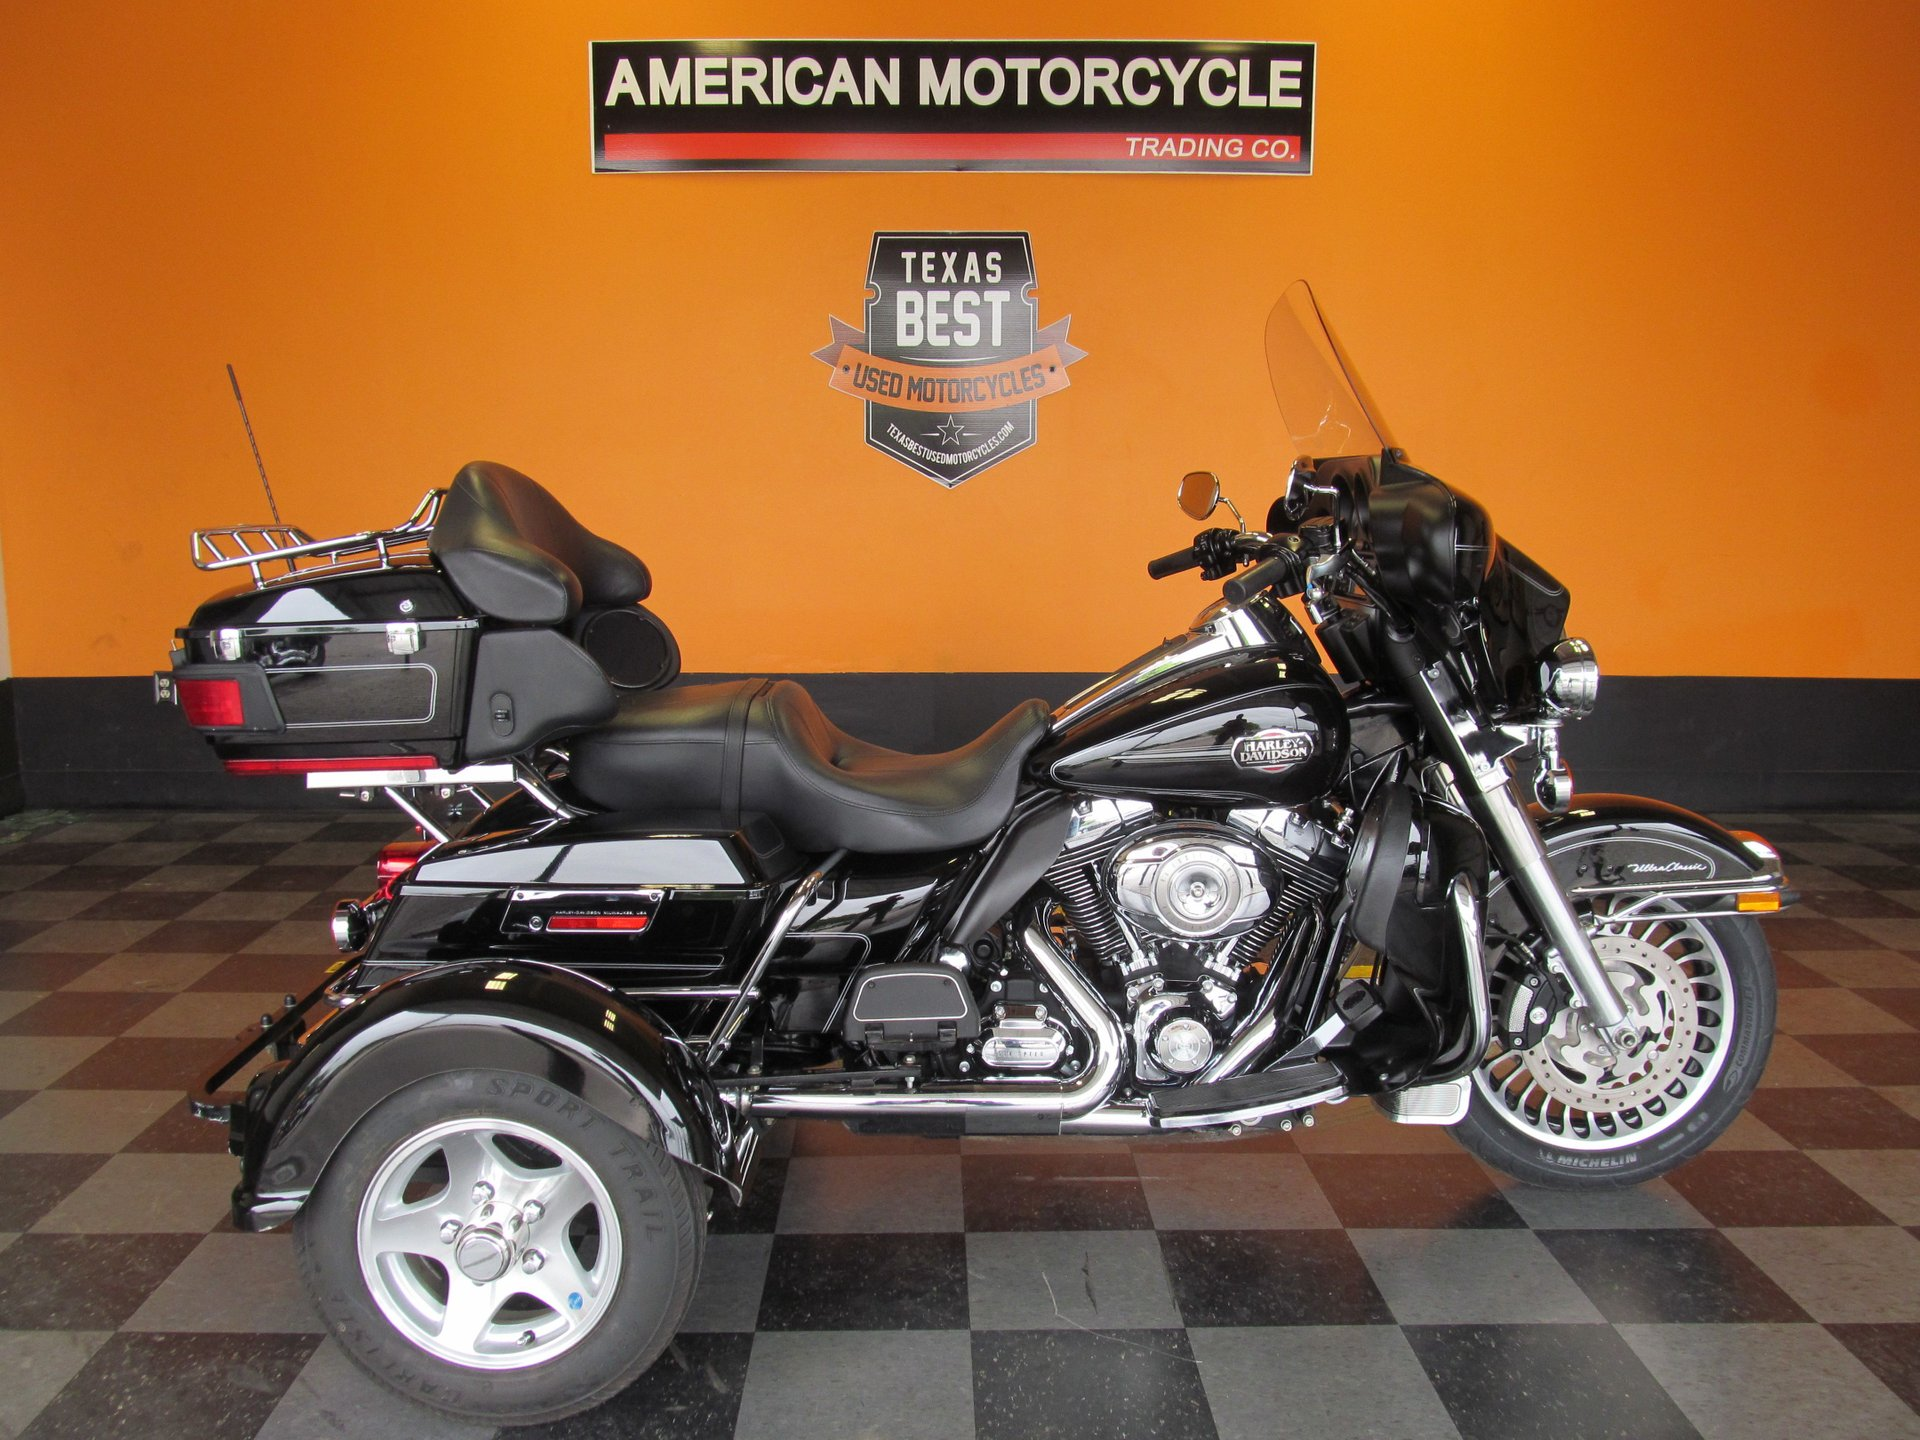 2011 harley davidson ultra classic flhtcu with removable outrigger trike kit